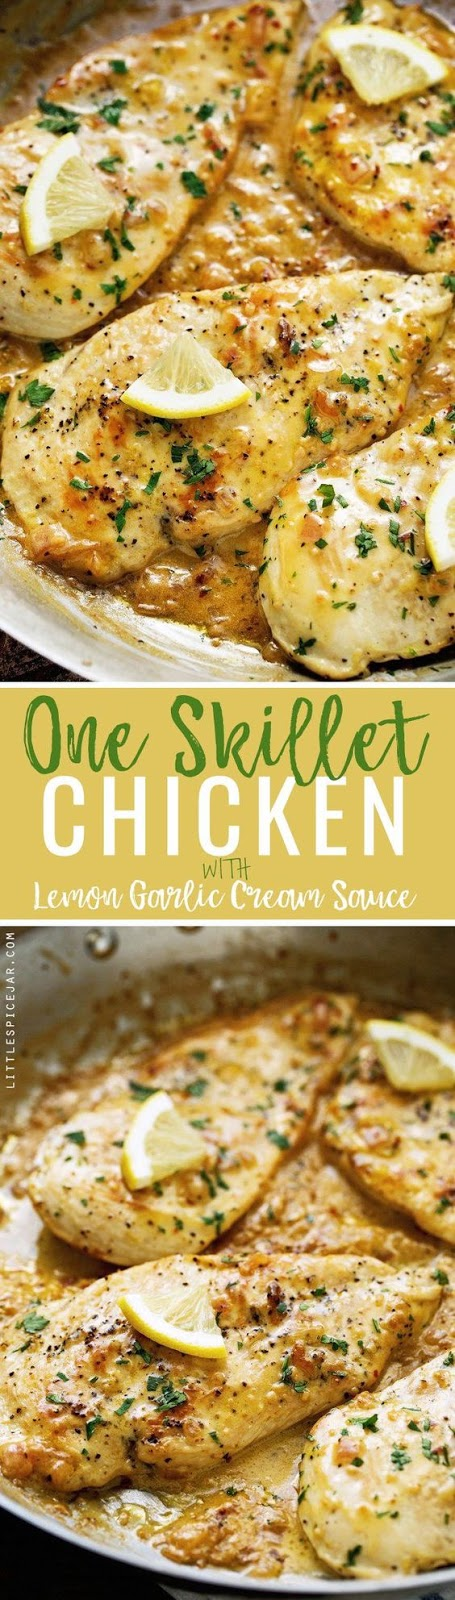 ONE SKILLET CHICKEN WITH LEMON GARLIC CREAM SAUCE #chicken #chickenrecipes #lemon #garlic #creamsauce #dinnerideas #dinnerrecipes #easydinnerrecipes